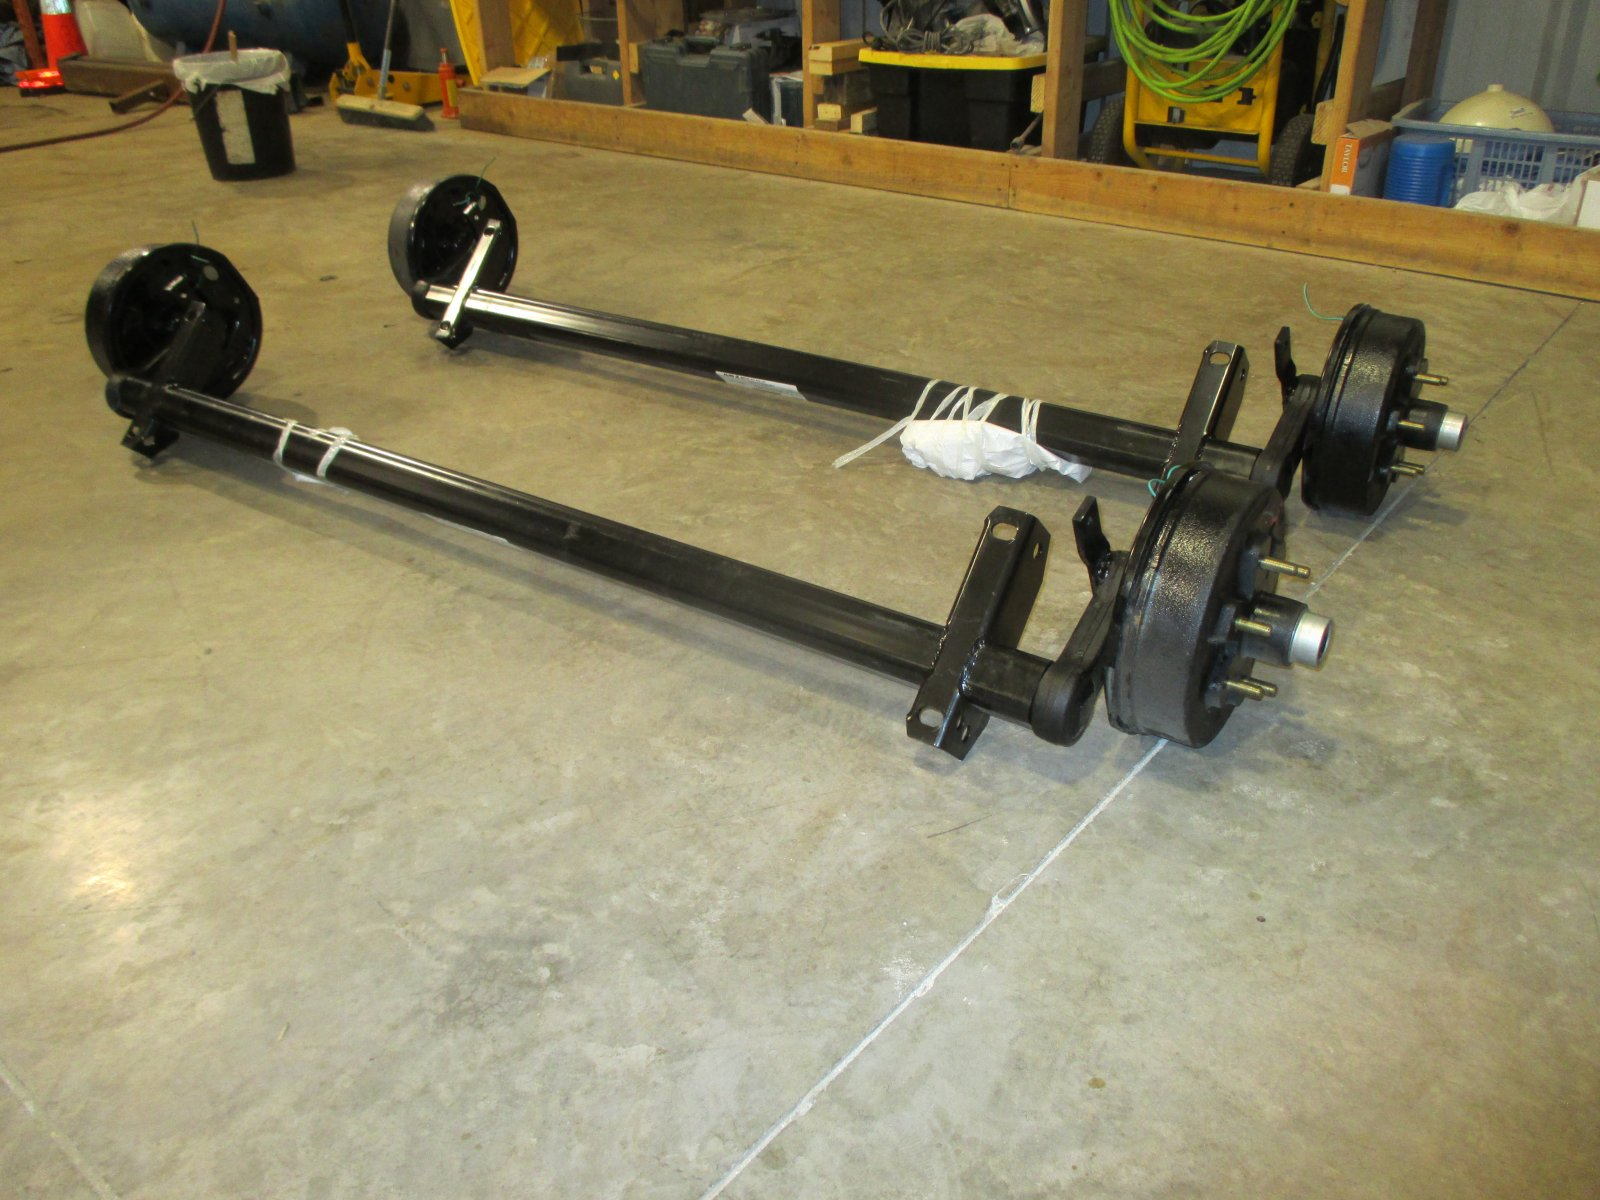 Click image for larger version  Name:1405 Axles Delivered.jpg Views:63 Size:281.8 KB ID:261411